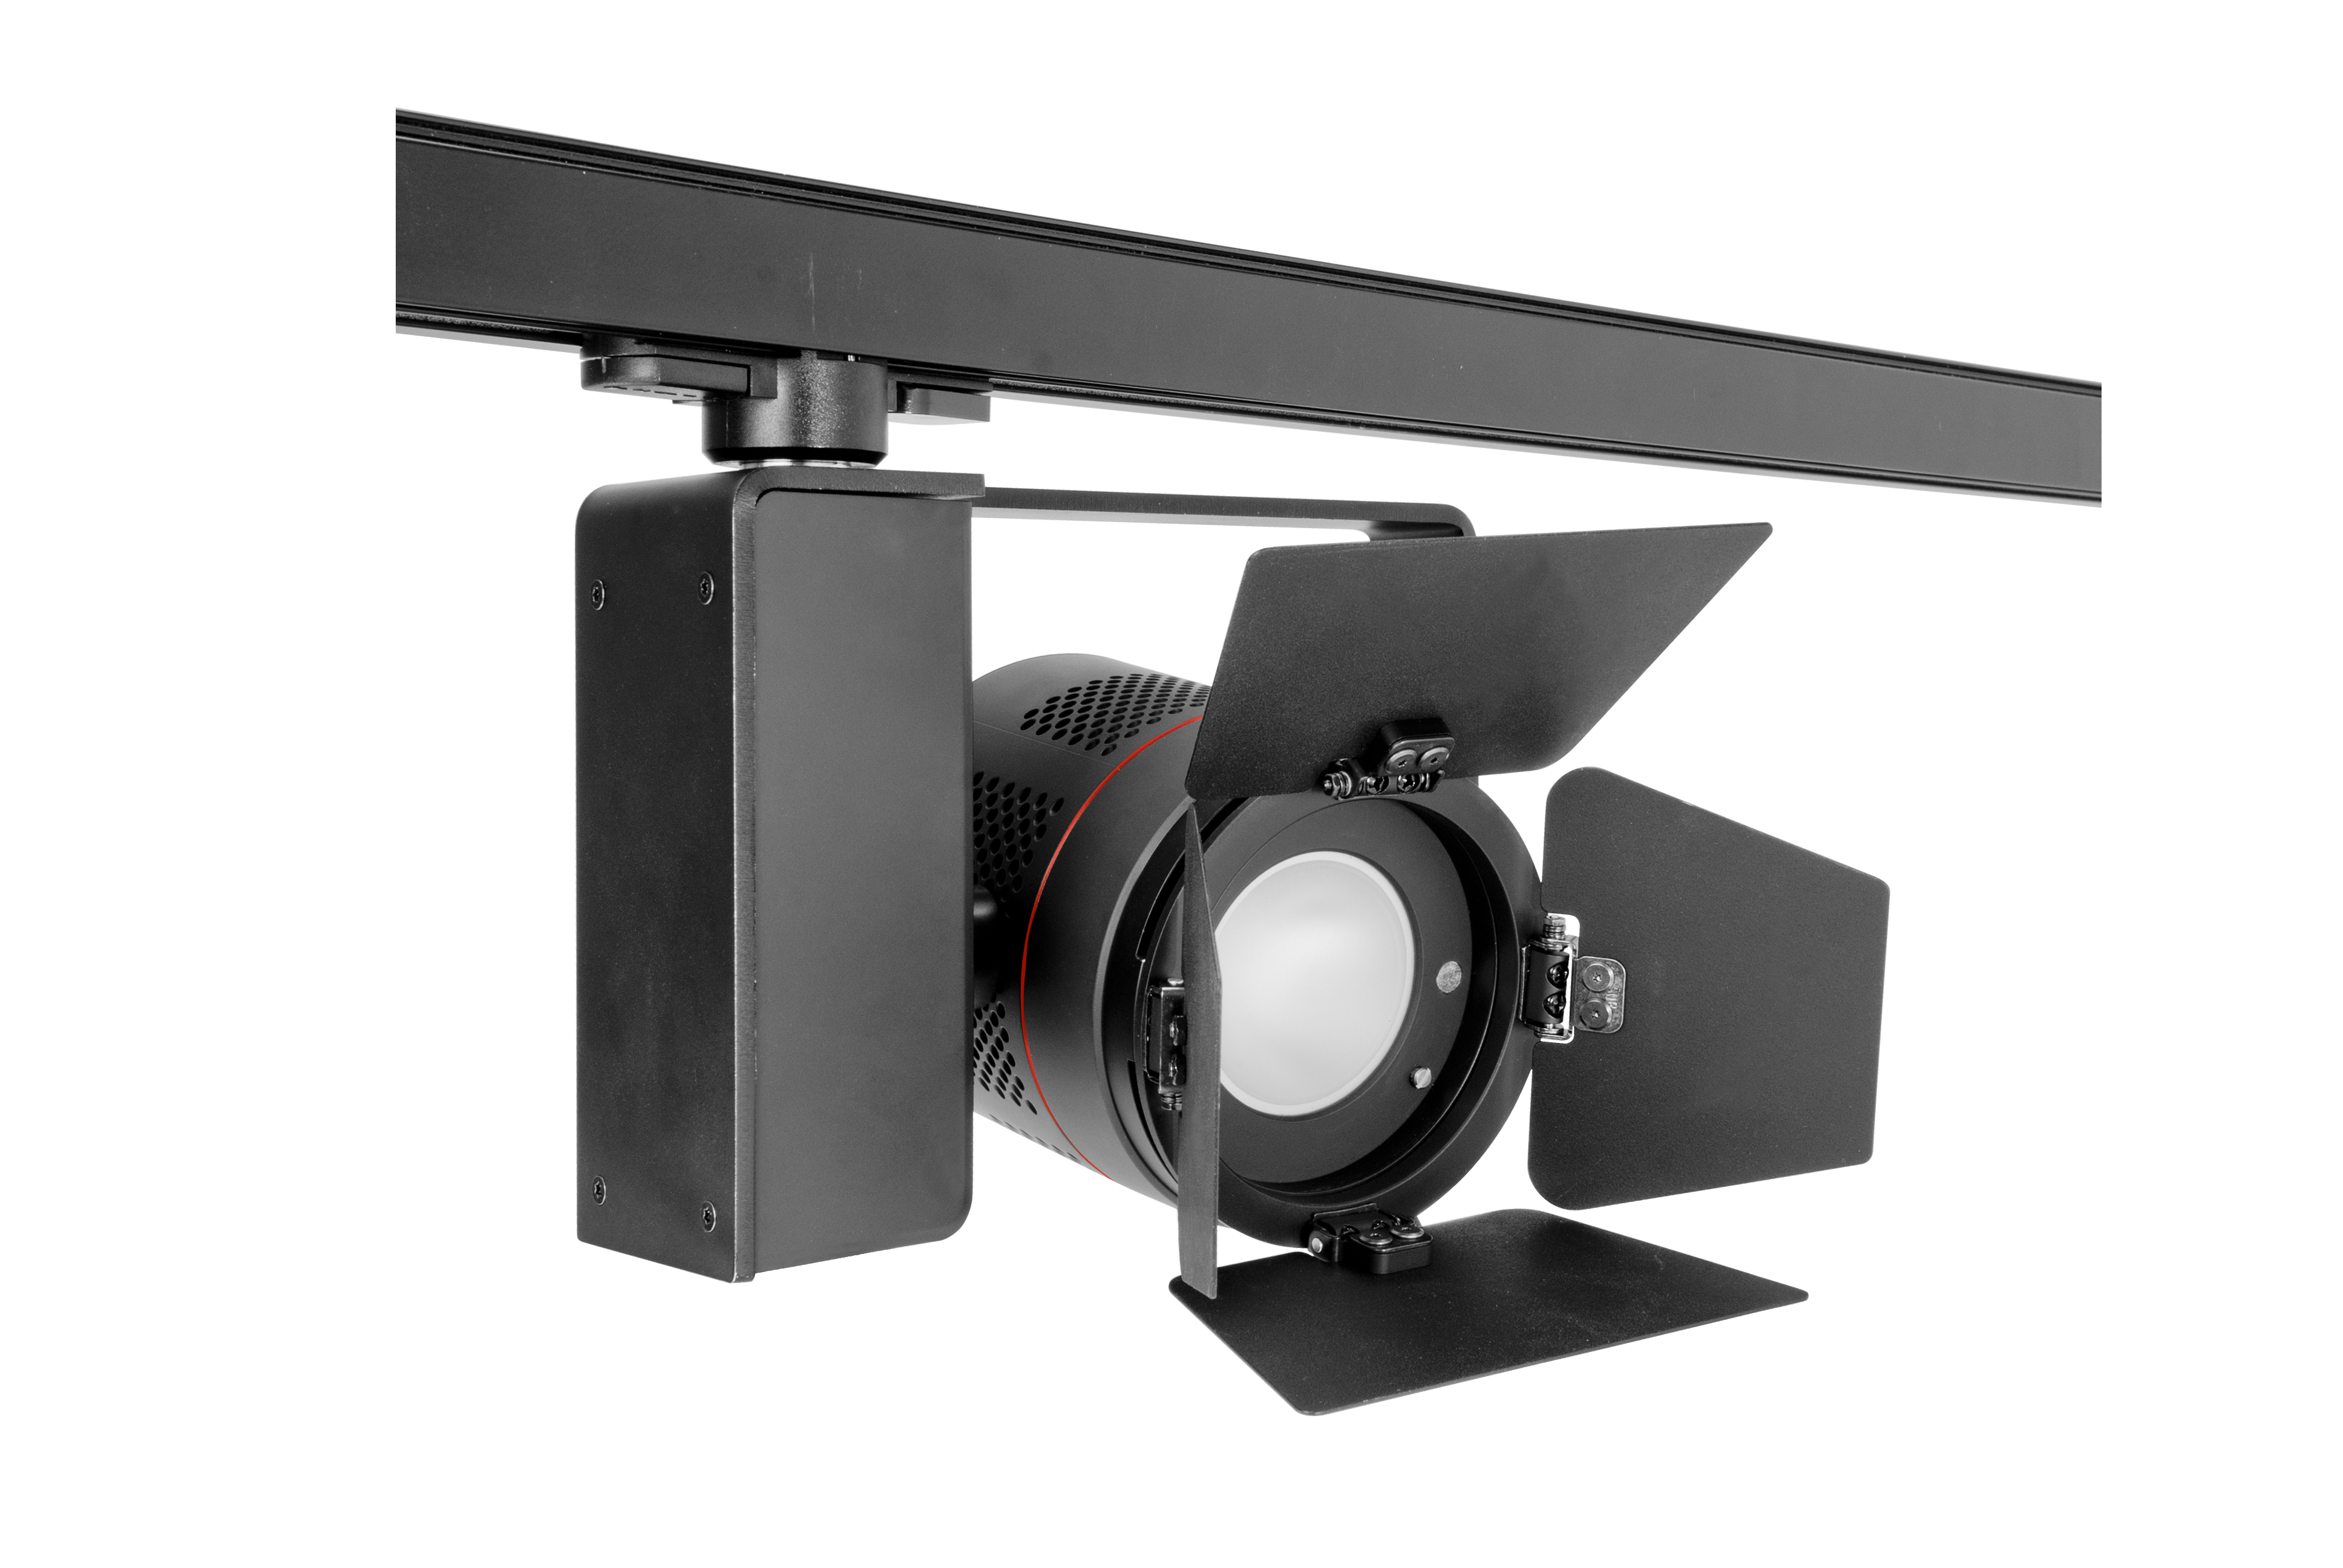 Fiilexu0027s LED Track Lighting System consists of the Fiilex Pro Track and the T360 Pro Plus LED fixture. The T360 Pro Plus is a compact highly controllable ...  sc 1 st  Barbizon Lighting & TAG: Display lighring   Barbizon Lighting Company